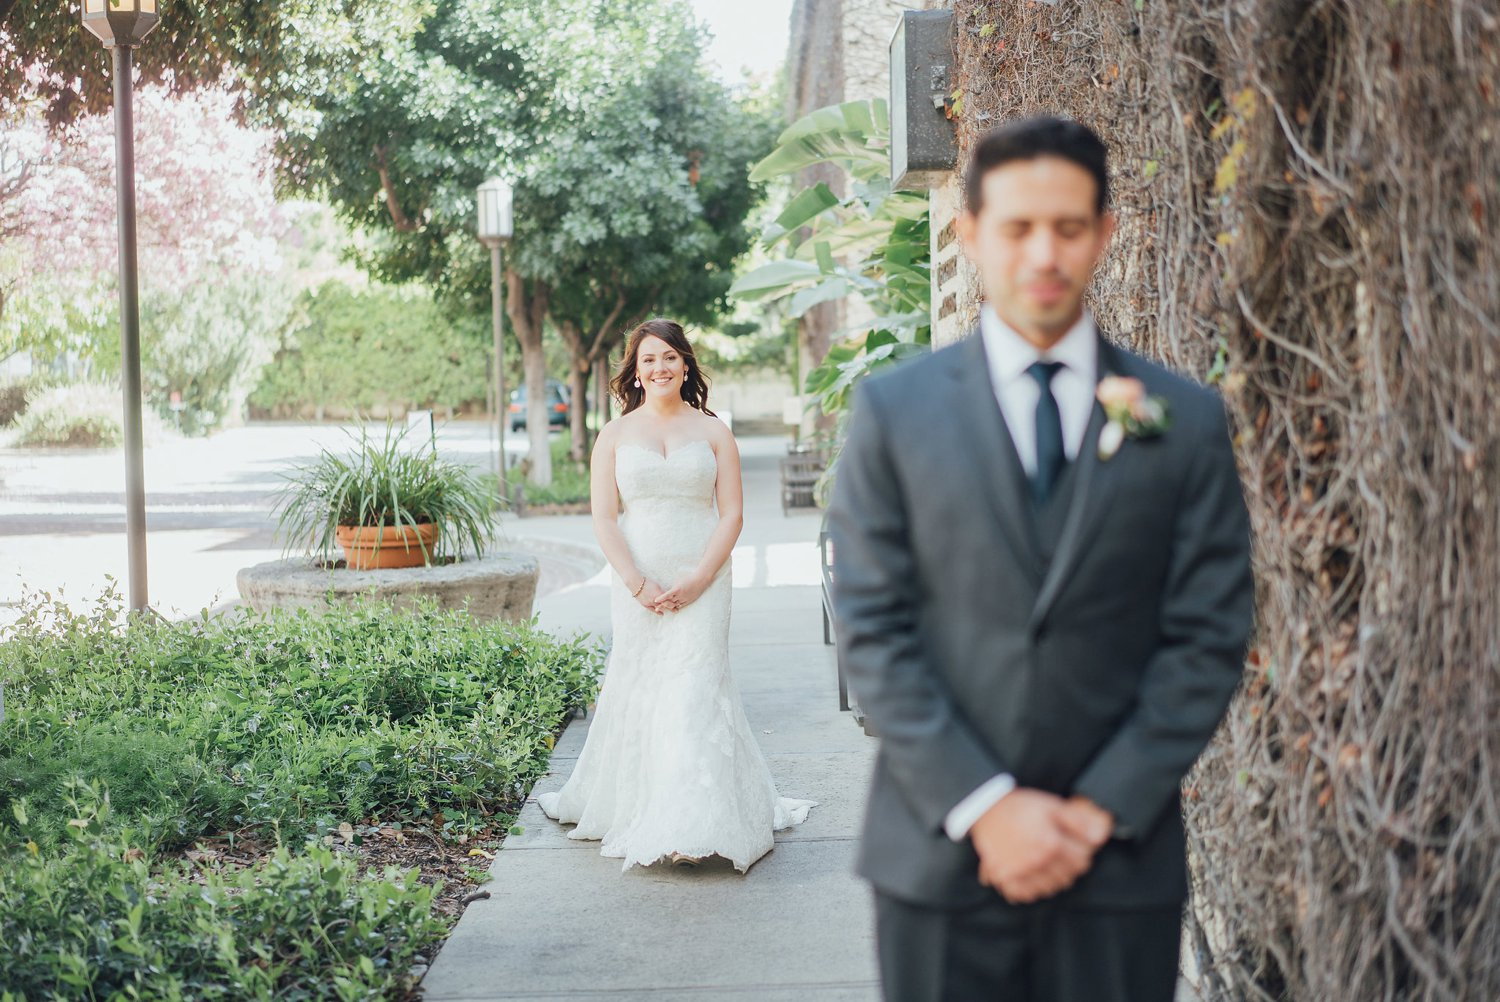 53los-angeles-river-center-and-gardens-jessica-jose-ca-wedding-photography-by-intothestory-moo-jae-destinatio-weddingjessica+jose'swedding00215after.JPG